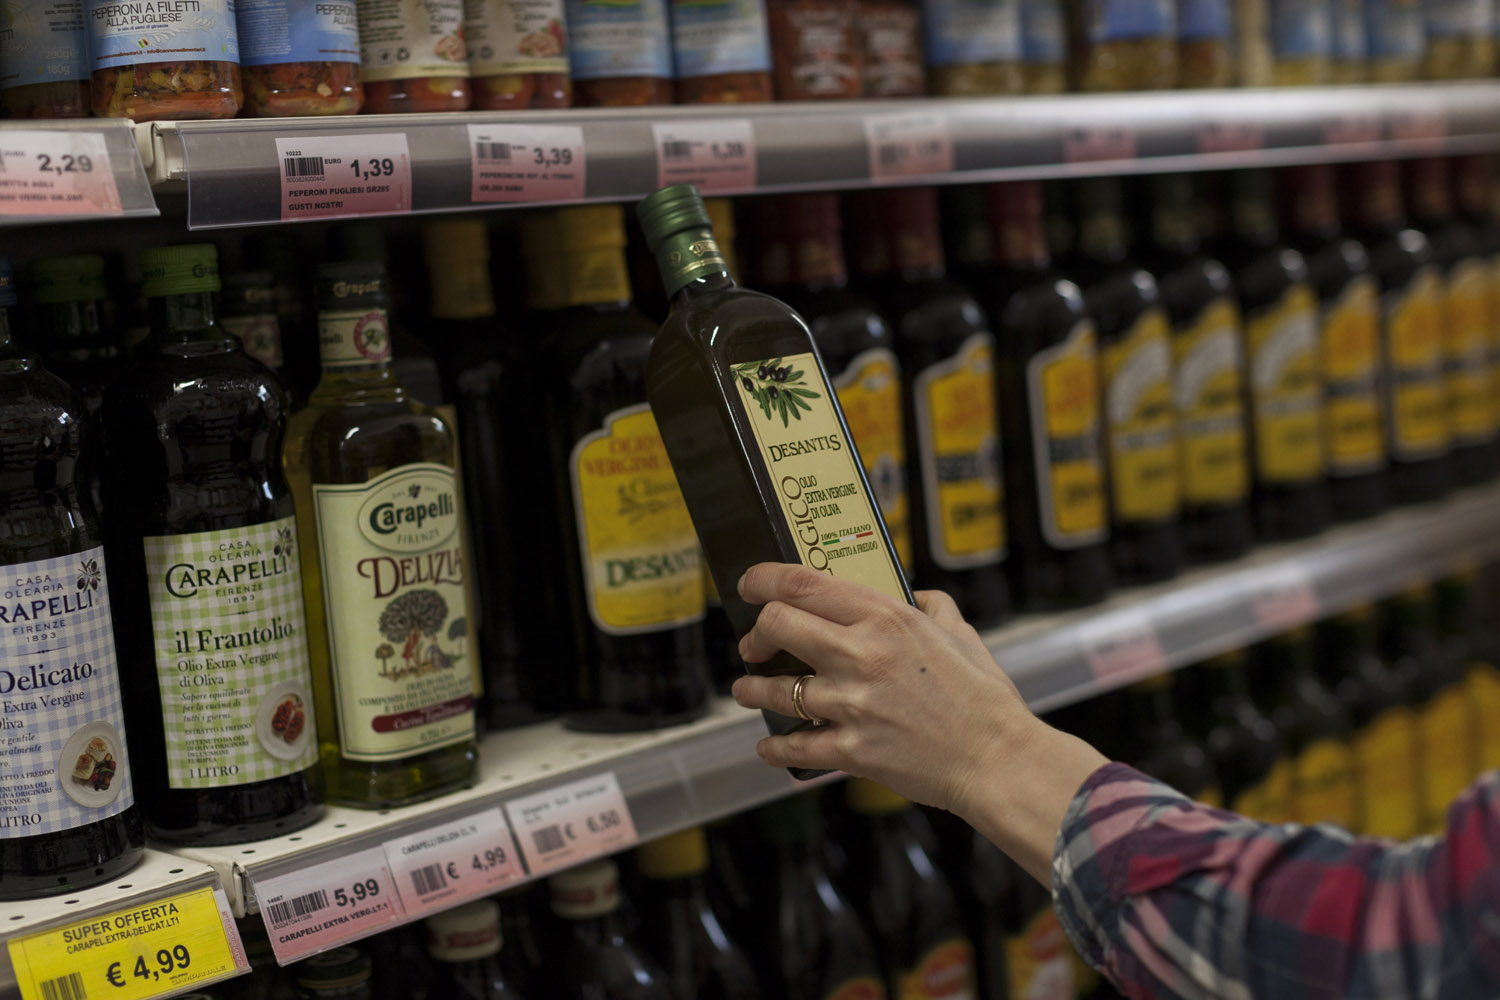 Buying olive oil in a supermarket in the province of Bari. While the fair price for a litre of olive oil is about 10-12 euros per litre, supermarkets routinely sell at a fraction of that price, posing serious questions on the financial sustainability of the olive oil sector. (2018)